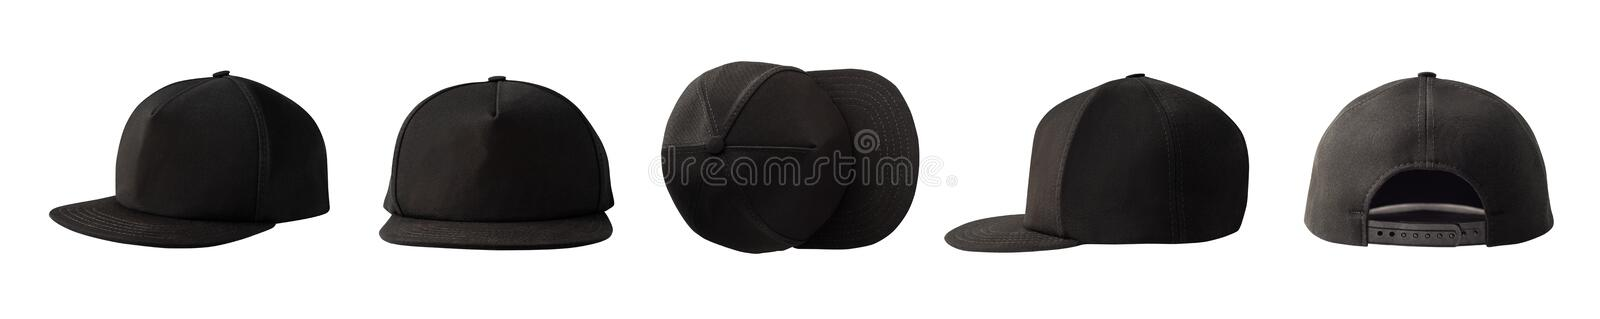 Front, side, top and back views of snapback cap. Set of front, side, top and back views of snapback baseball cap isolated on white background stock image